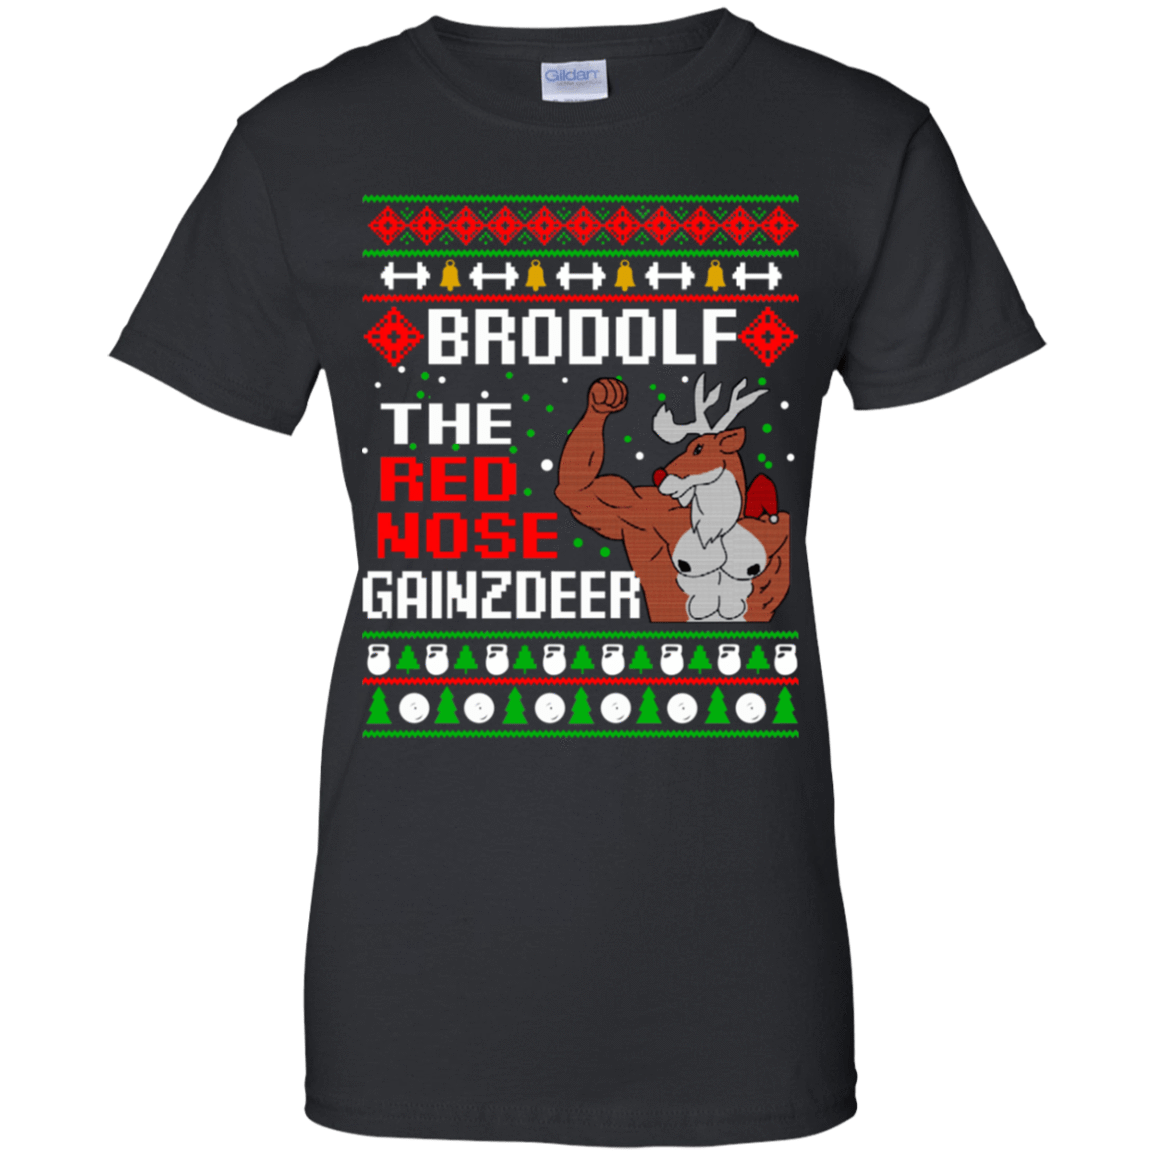 Brodolf The Red Nose Gainzdeer Christmas Sweater, T-Shirts & Hoodies 939-9248-73888886-44695 - Tee Ript